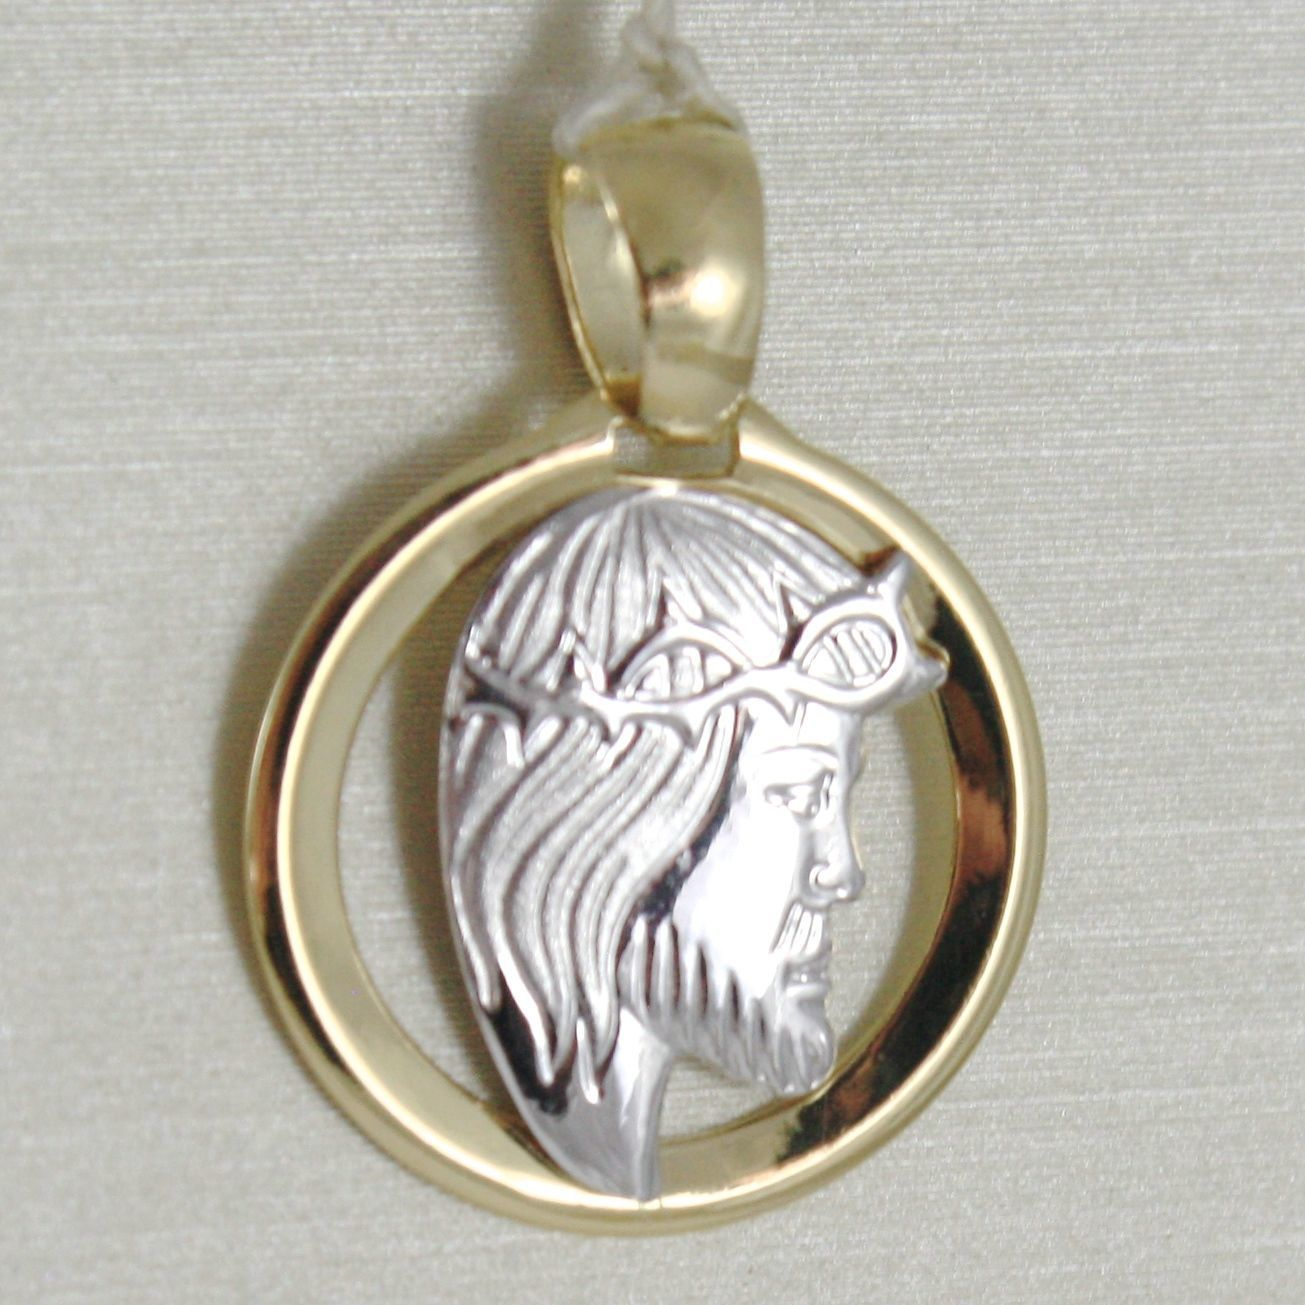 PENDANT MEDAL YELLOW GOLD WHITE 750 18K, FACE OF CHRIST, CROWN OF THORNS